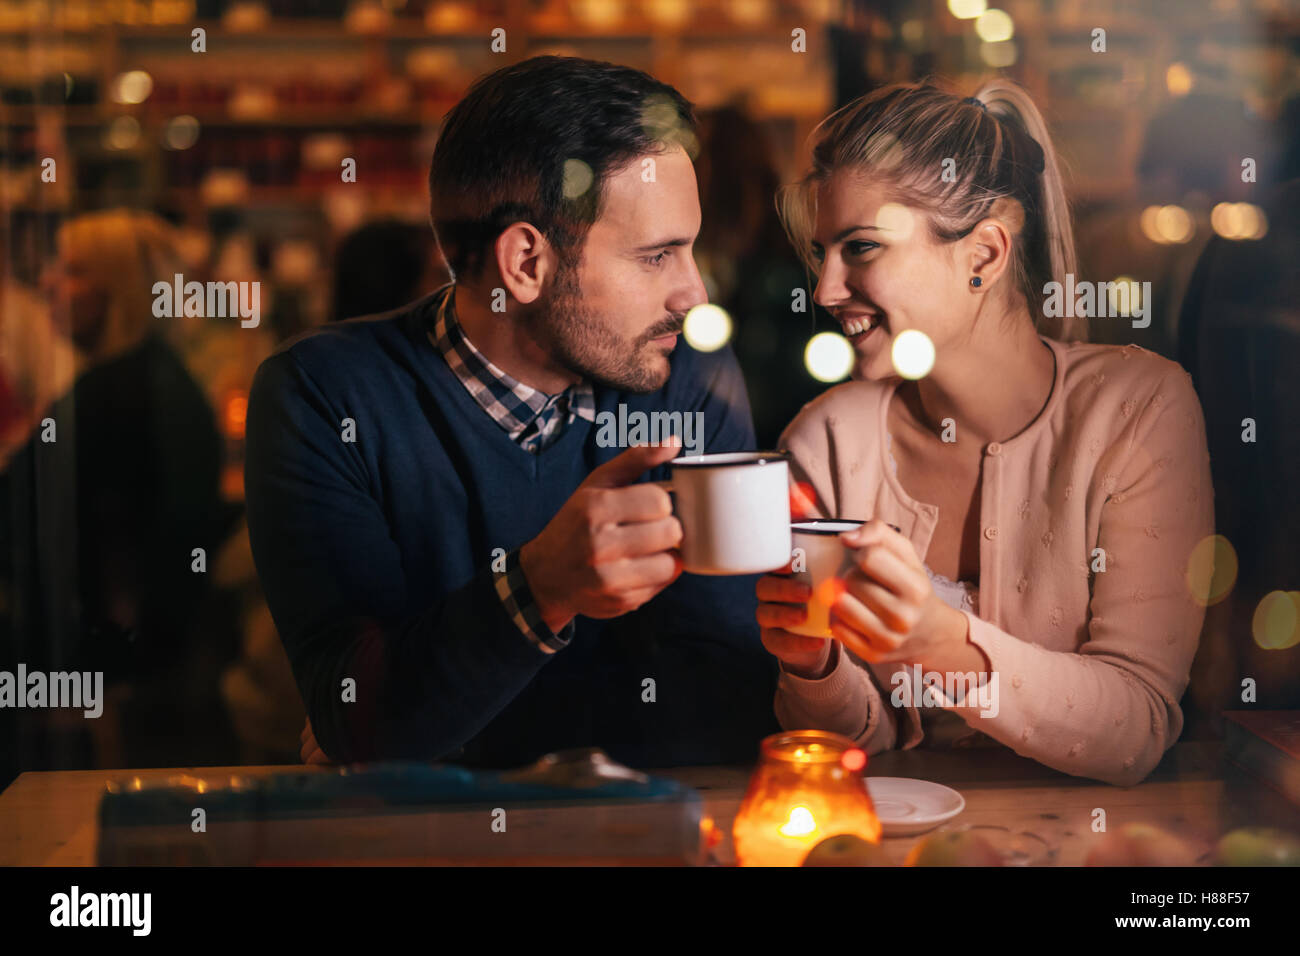 Romantic couple dating at valentines night in pub - Stock Image